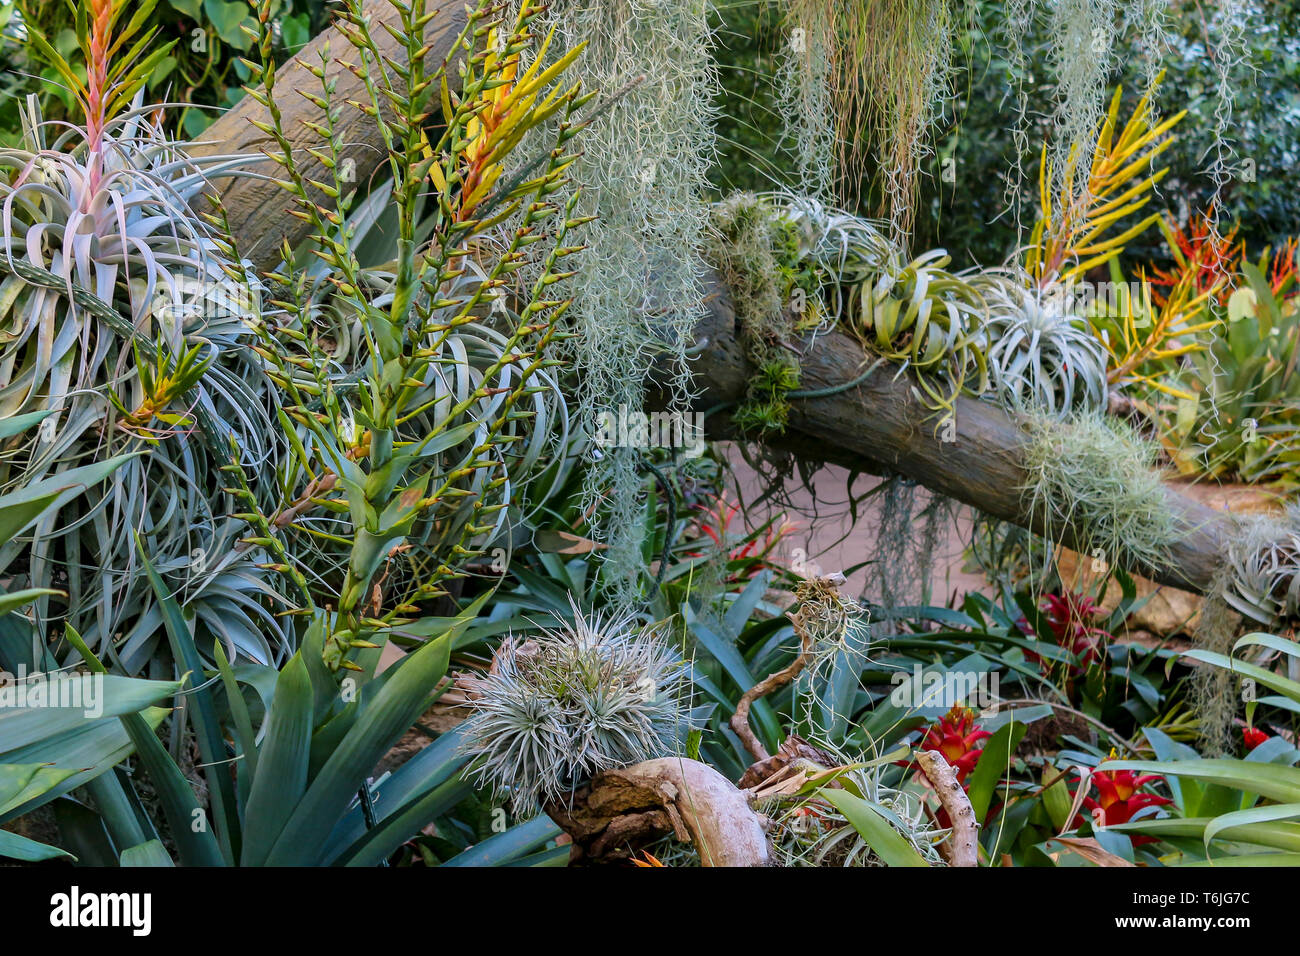 Wild exotic jungle plants. Shallow depth of field background - Stock Image